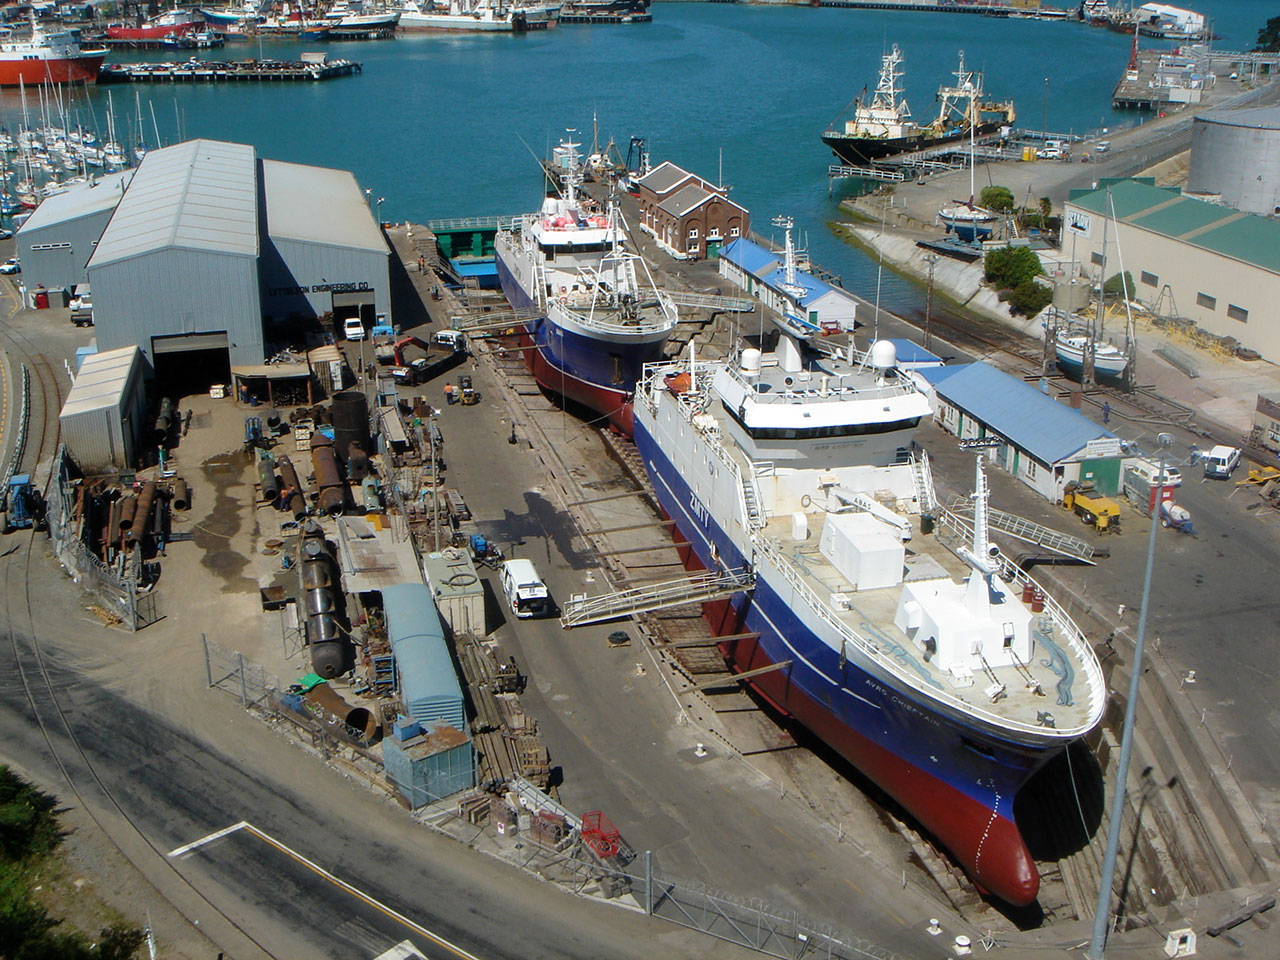 Trawlers - Janus Avro Chieftain - in dry dock